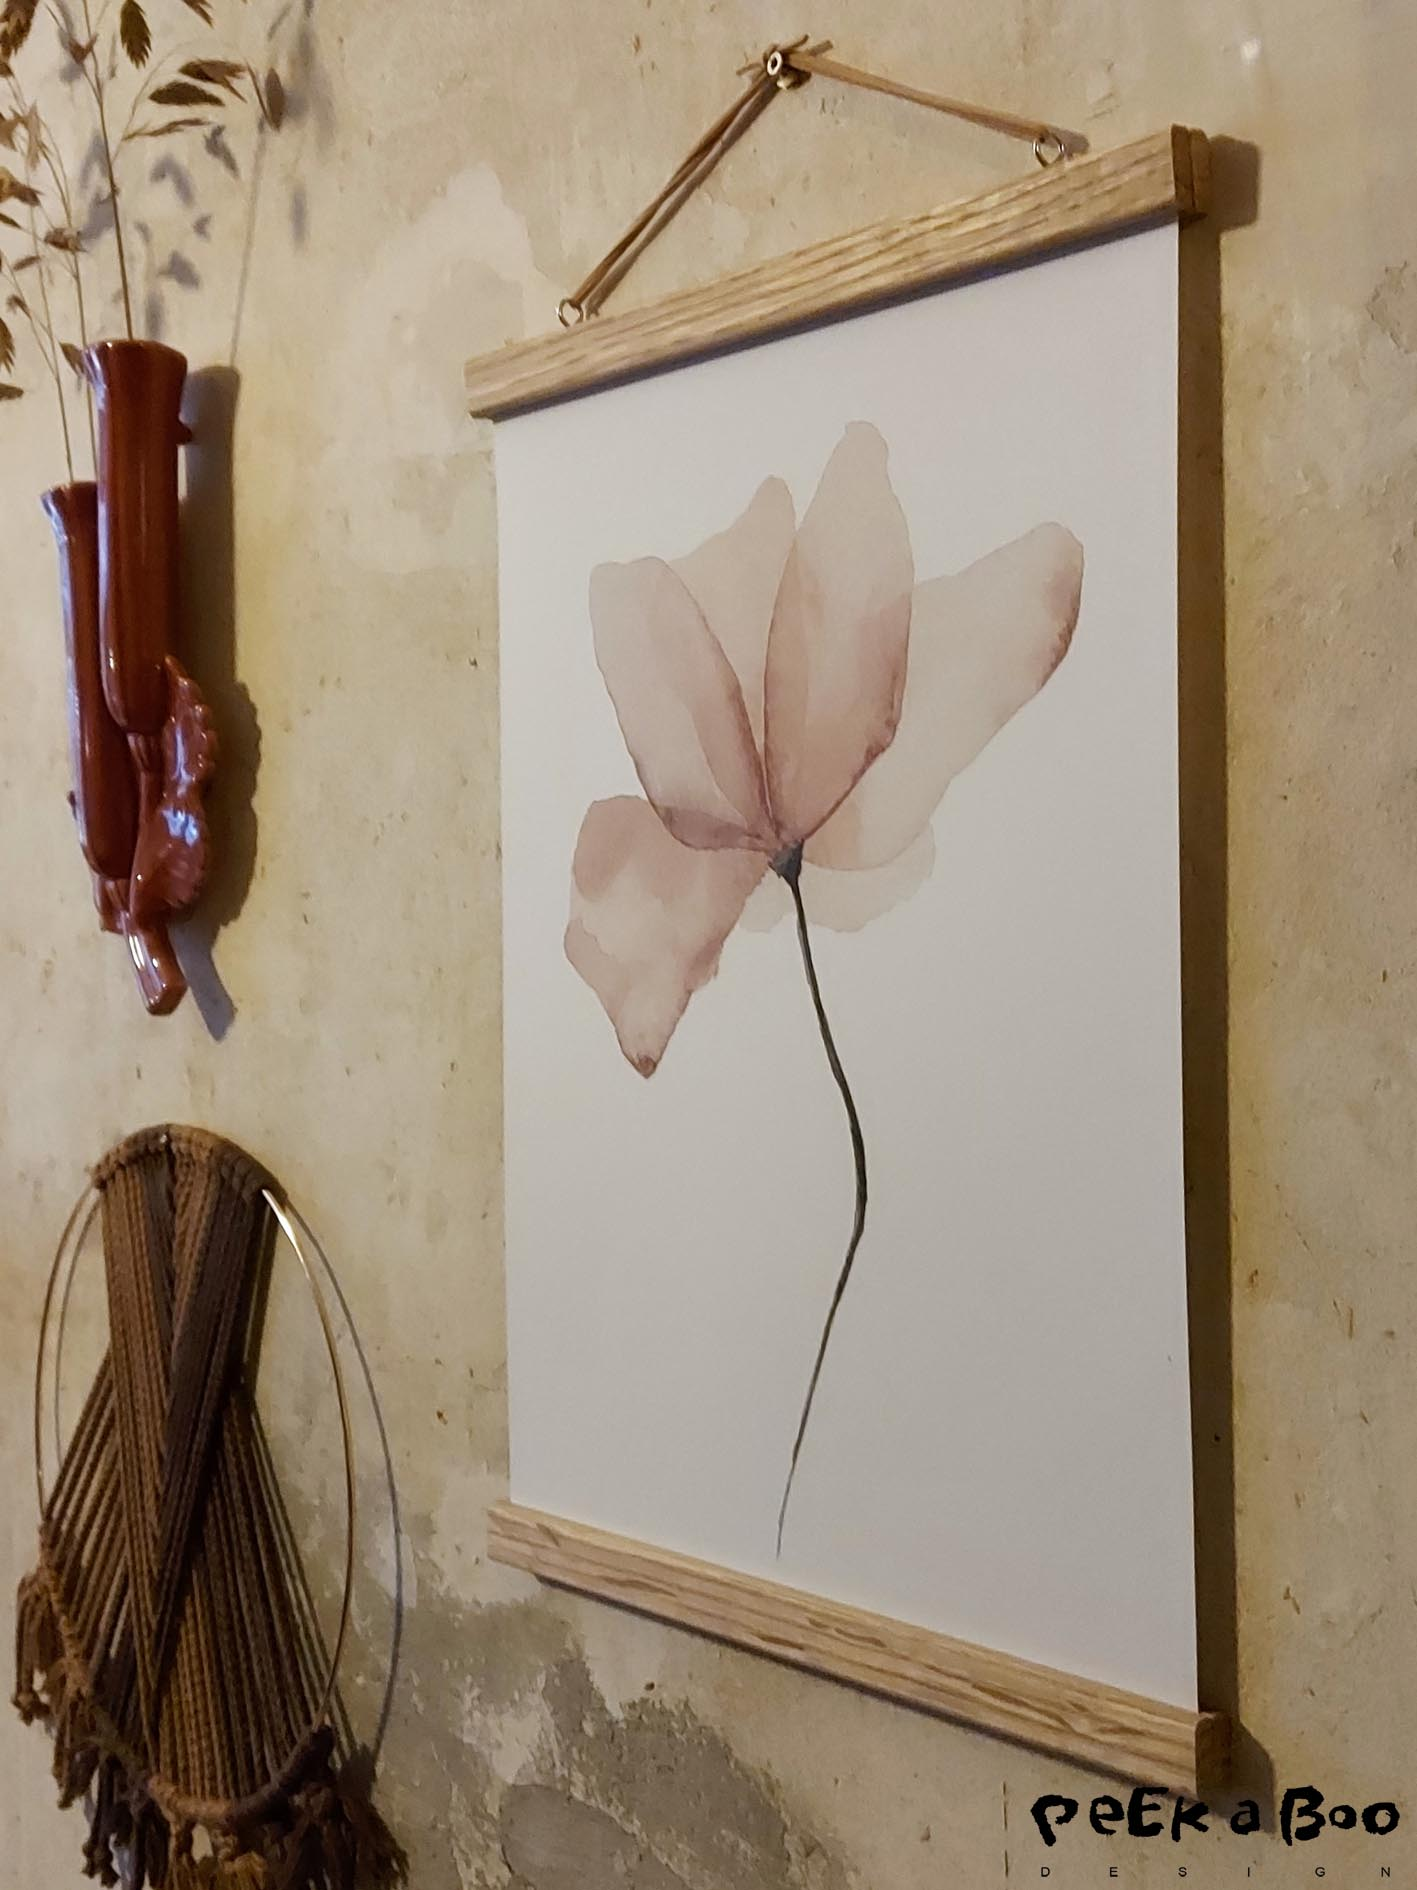 The pink painted flower in the oak wood hanger.